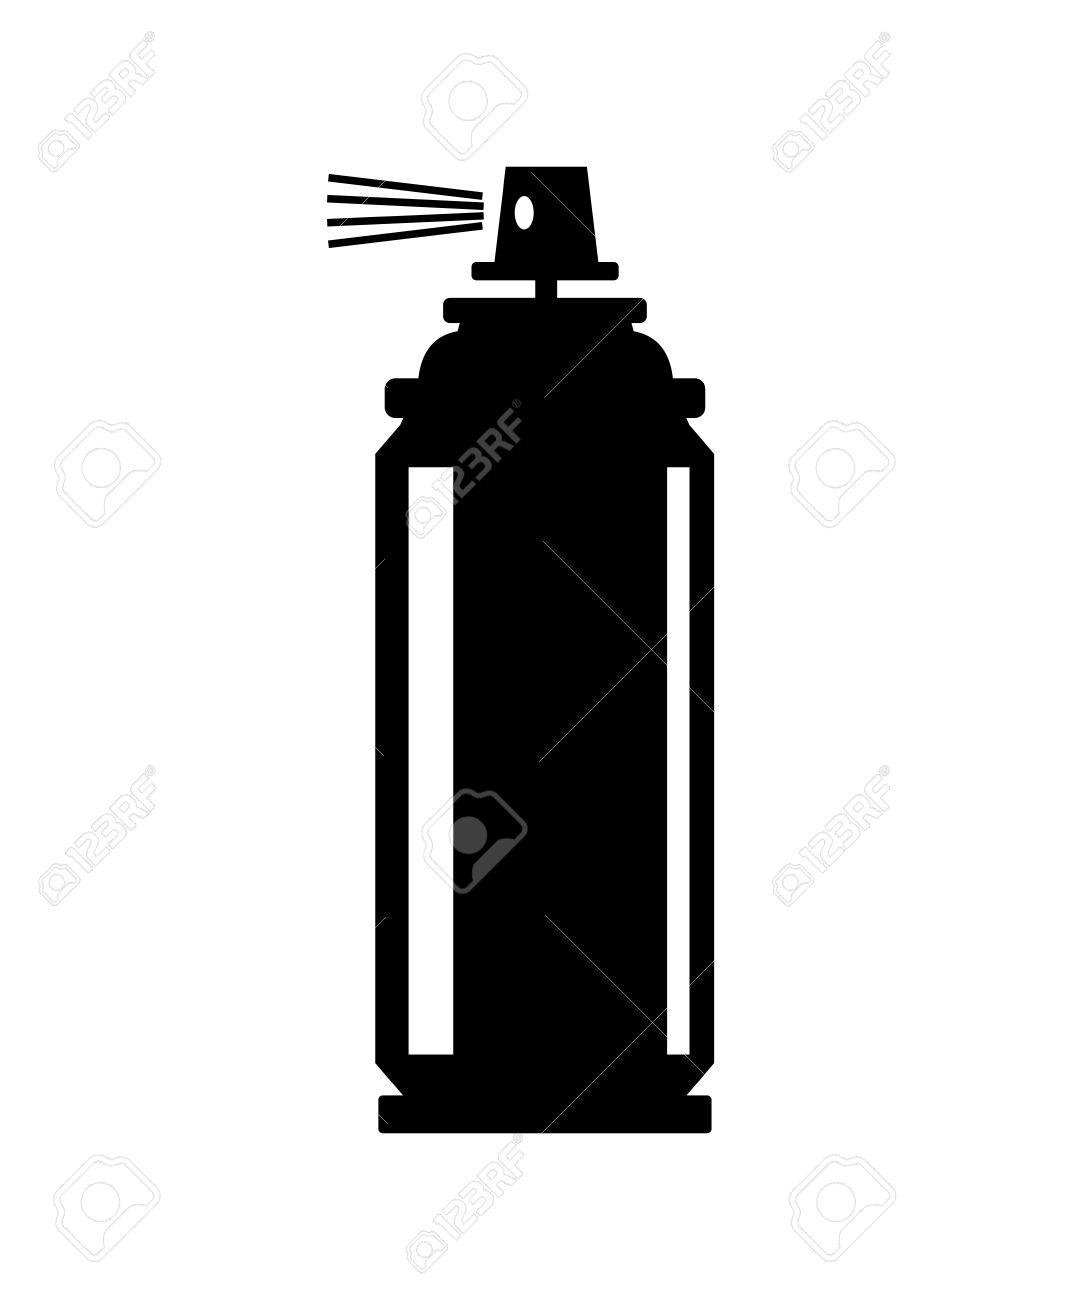 spray silhouette at getdrawings com free for personal use spray rh getdrawings com graffiti spray can vector spray paint can vector